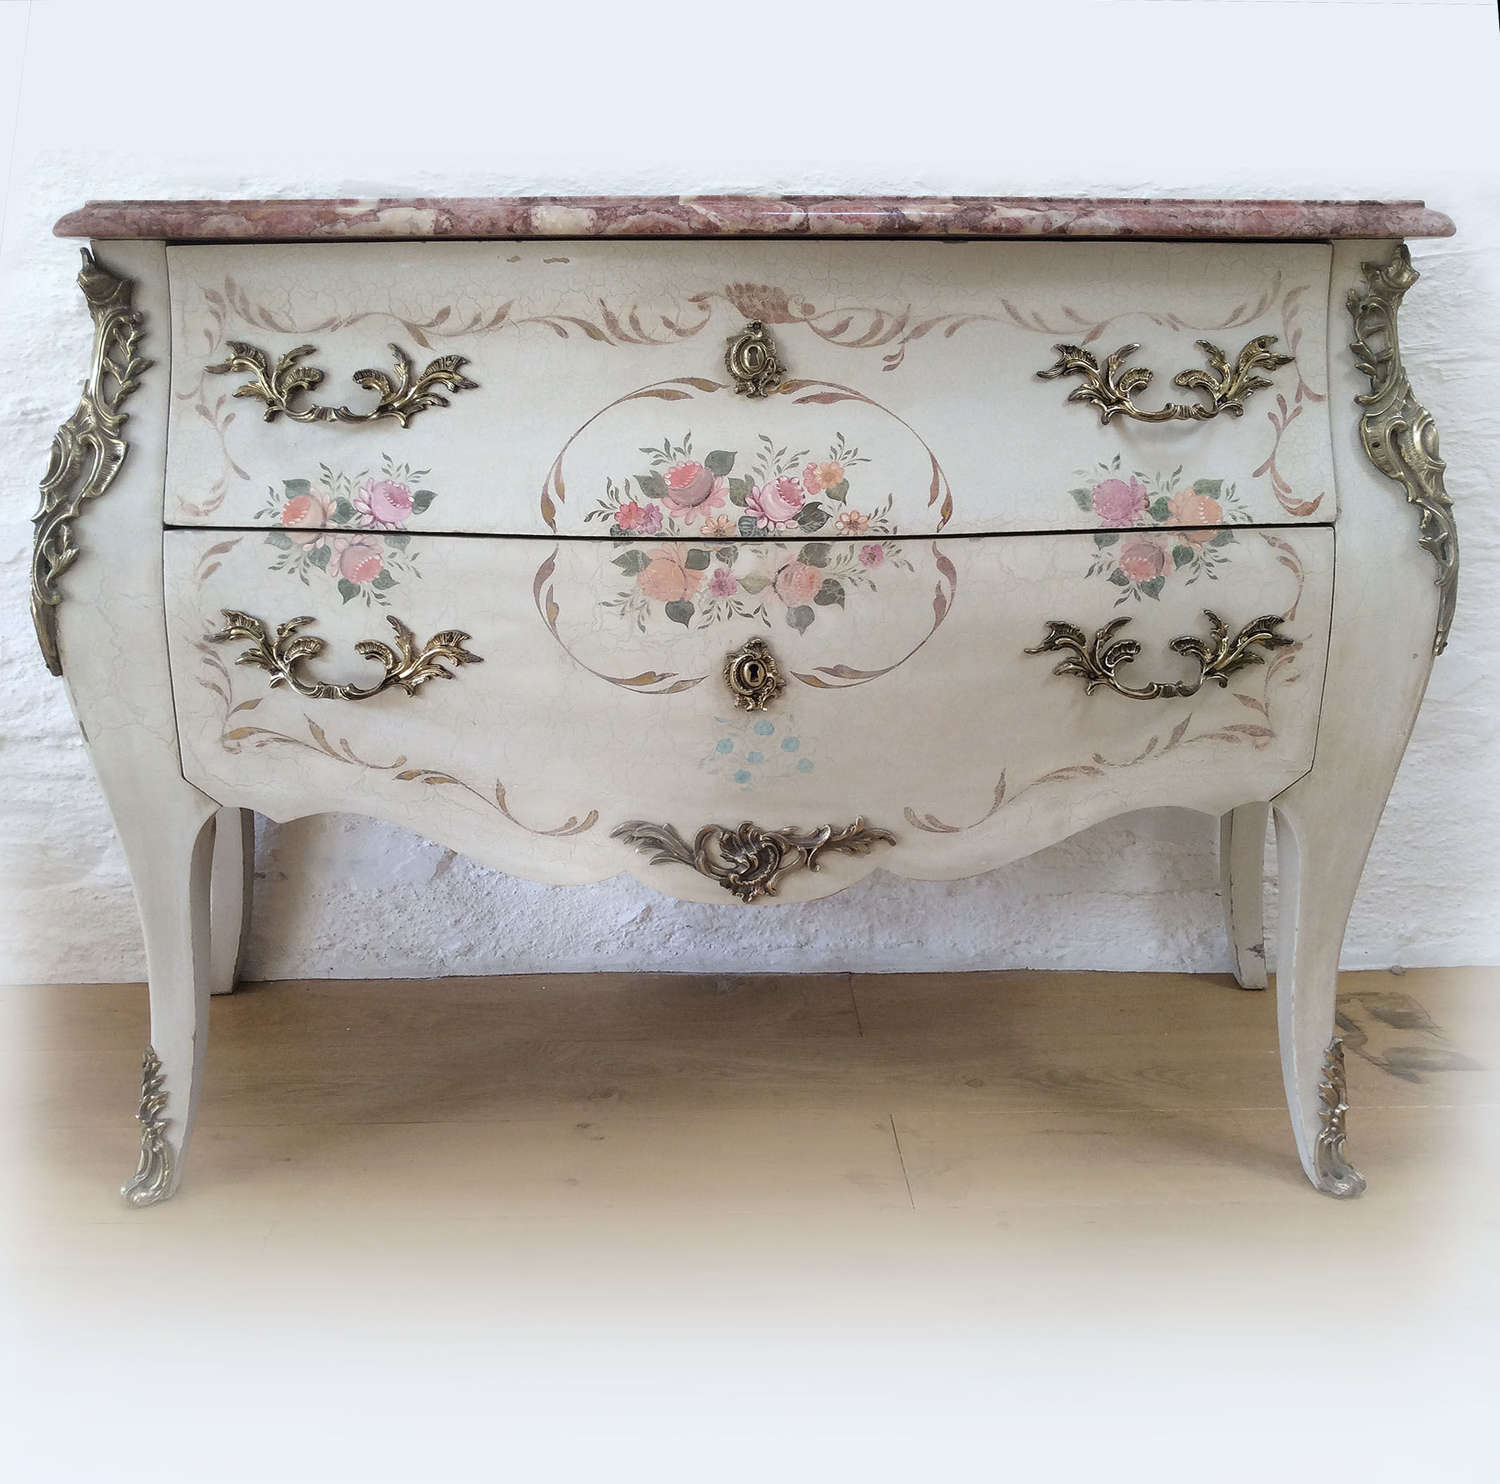 Louis XV style Hand-painted bombe commode